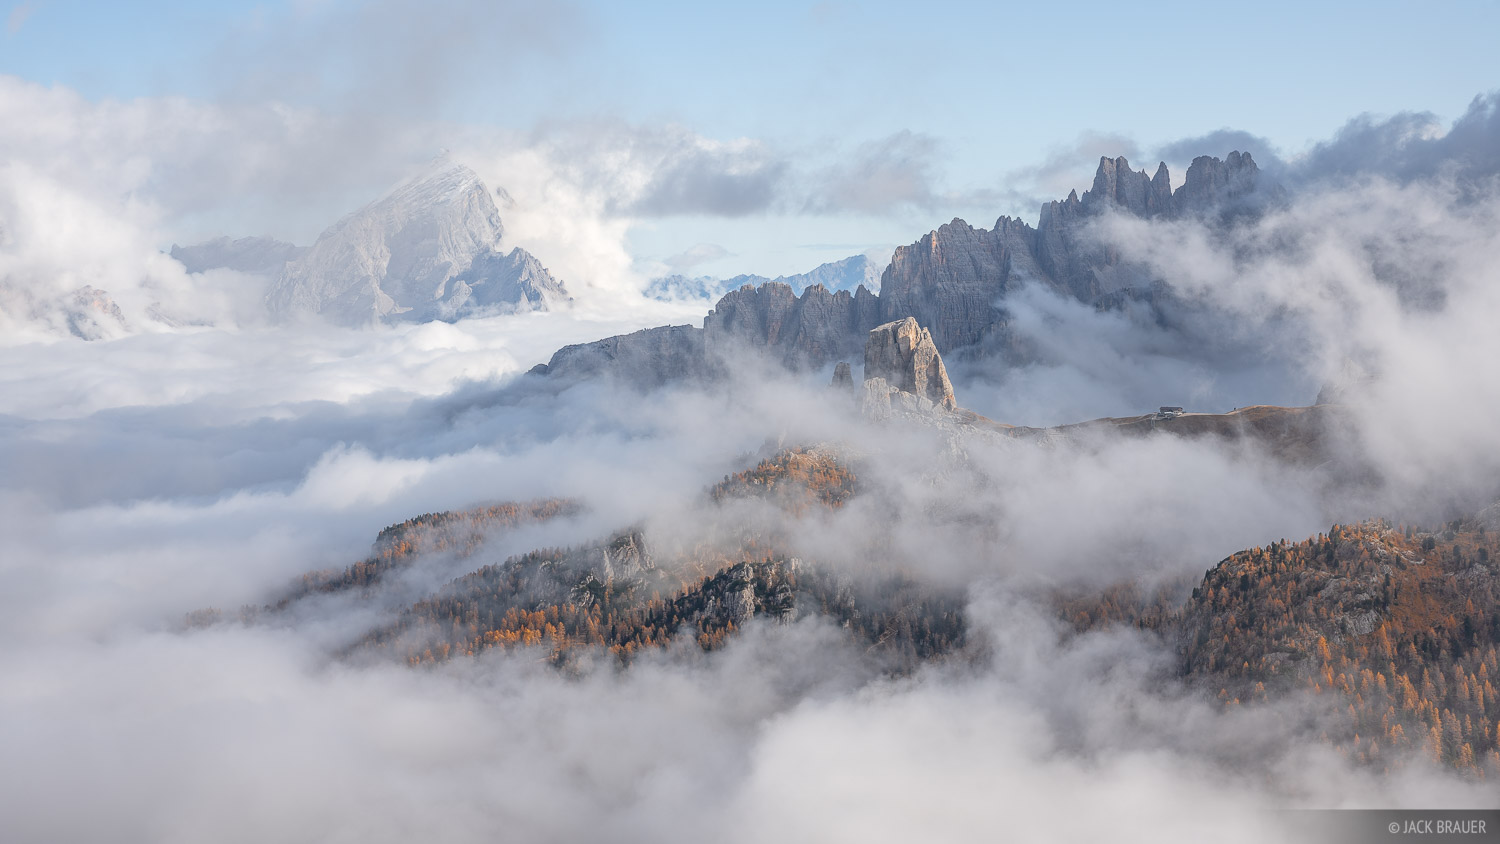 Cinqui Torri, Dolomites, Italy, Lagazuoi, October, Croda da Lago, Alps, photo